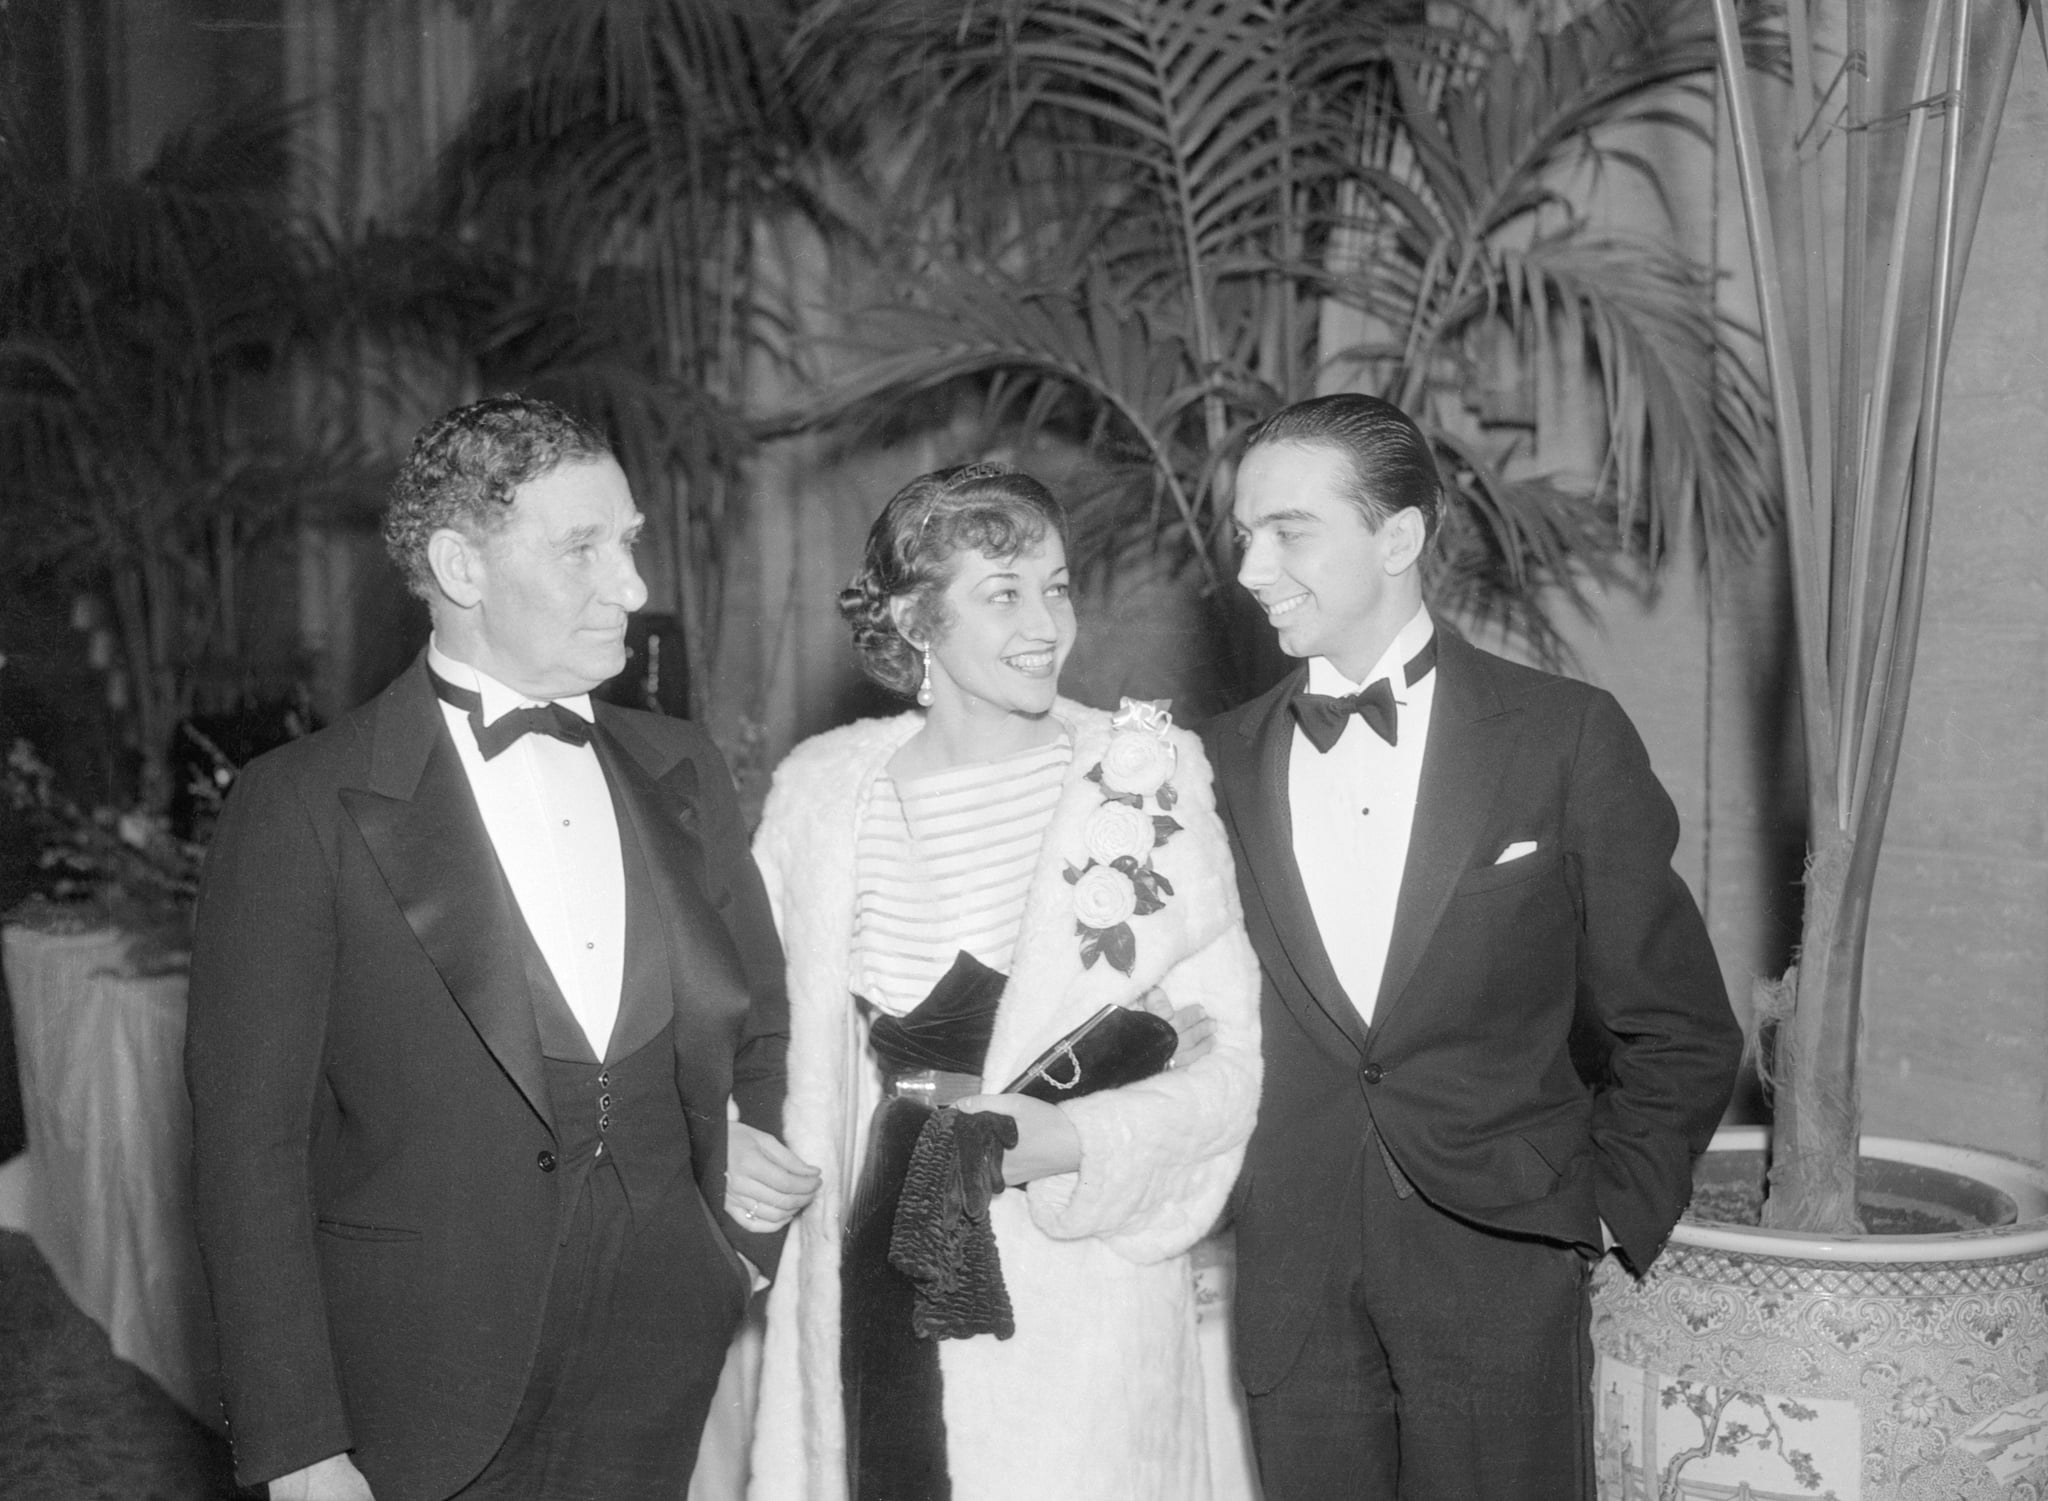 (Original Caption) Troth to Henry Willson denied by Paula Stone daughter of Fred Stone. Ah said the Hollywood heartstring-tuners when they saw Paula Stone daughter of Fred Stone, veteran actor now starring in pictures, at the Academy of Motion Picture Arts and Sciences dinner with Henry Willson, film writer and Actor's agent.